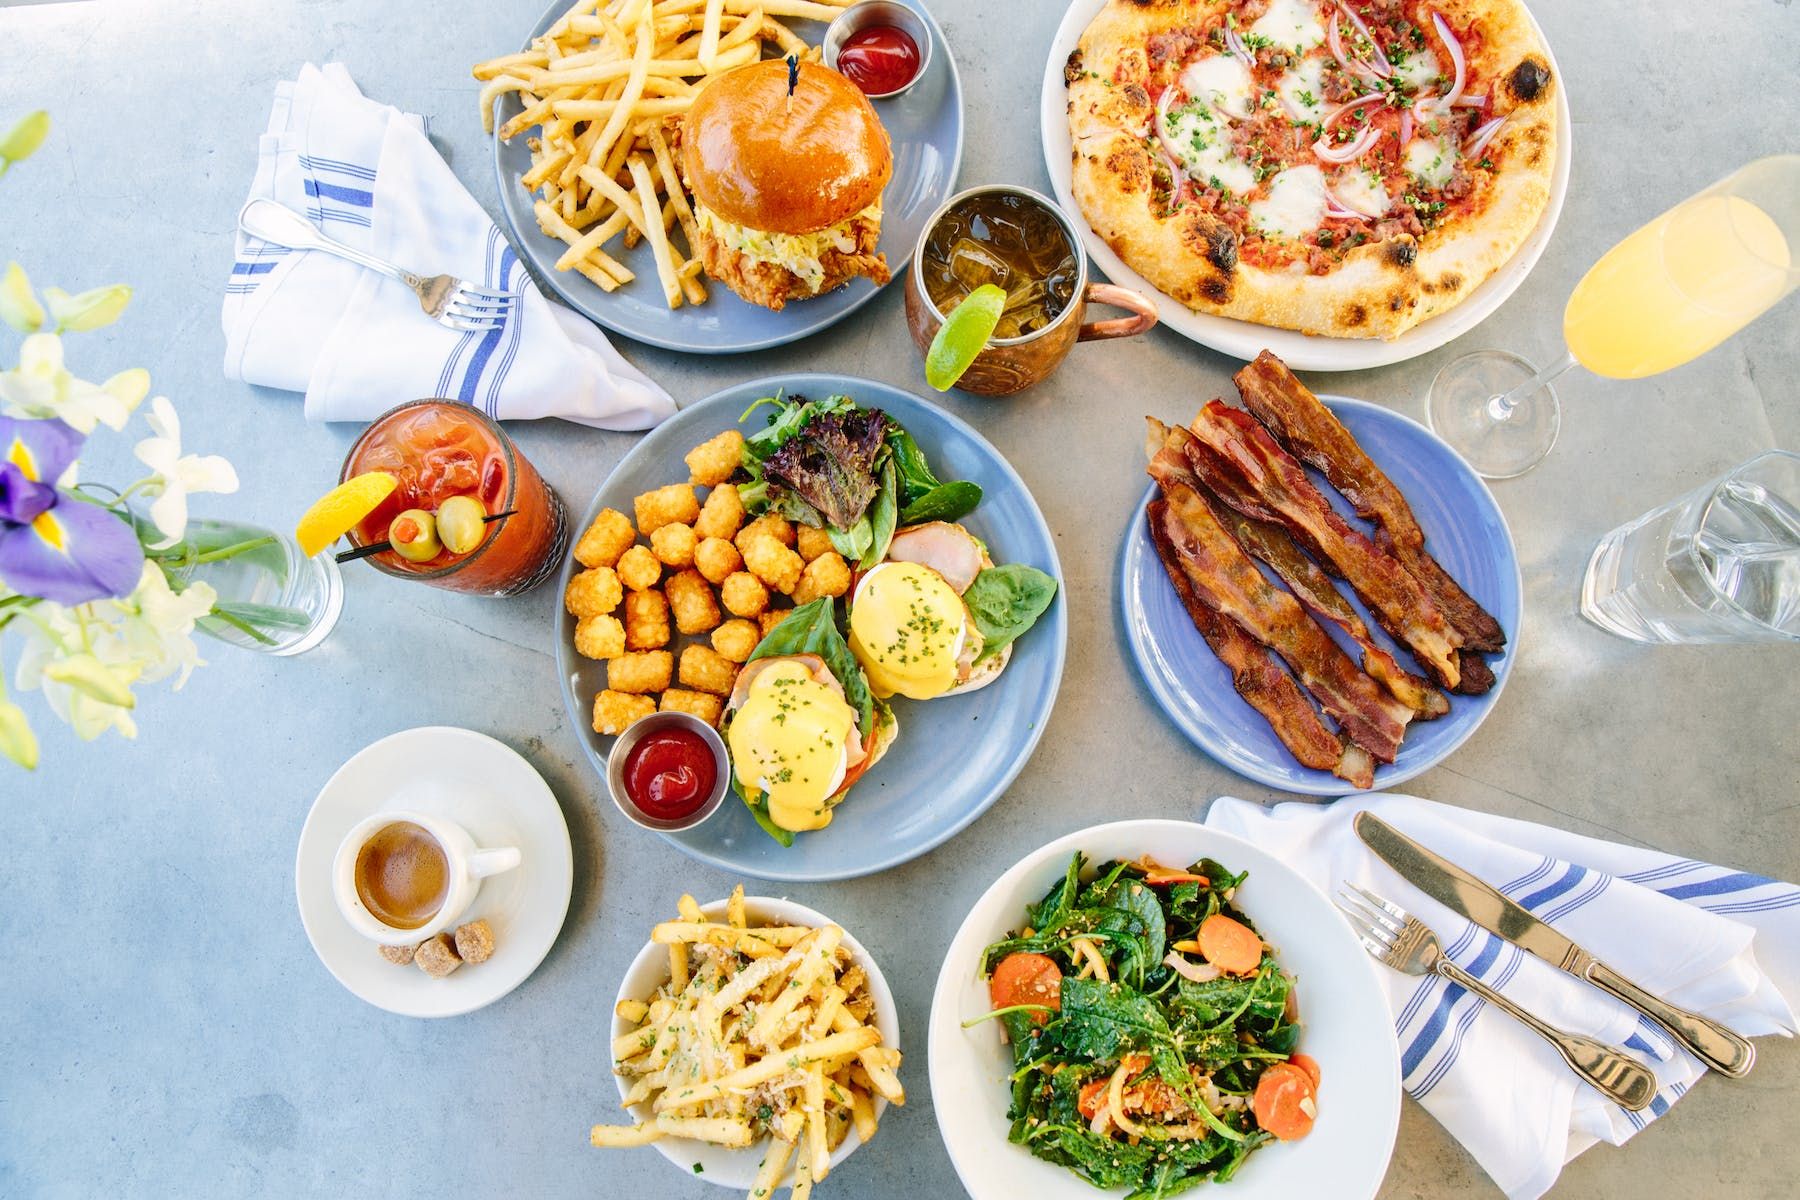 different plates of food hamburger, french fries, bacon, pizza served on a table